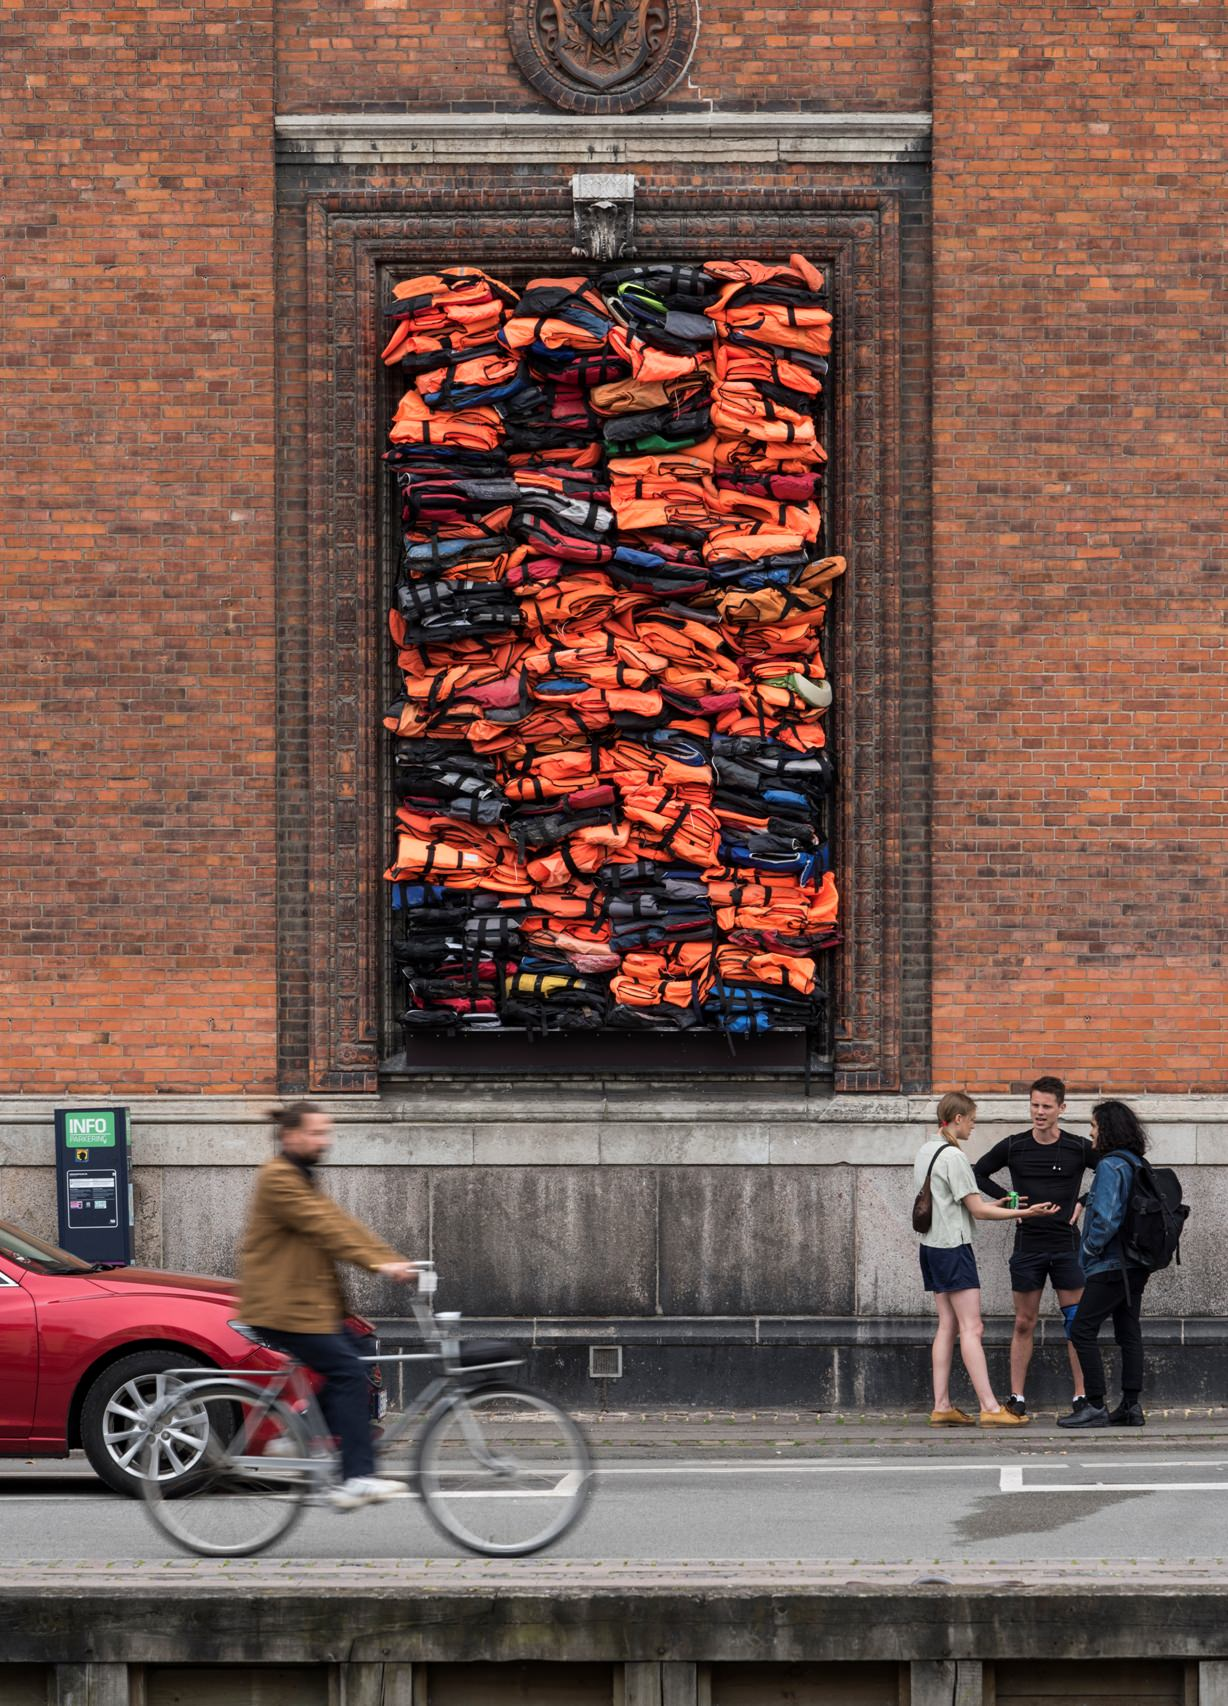 """Ai Weiwei, """"Soleil Levant"""", 2017. Installation view, Kunsthal Charlottenborg, 2017. Courtesy of the artist. Photo by David Stjernholm"""